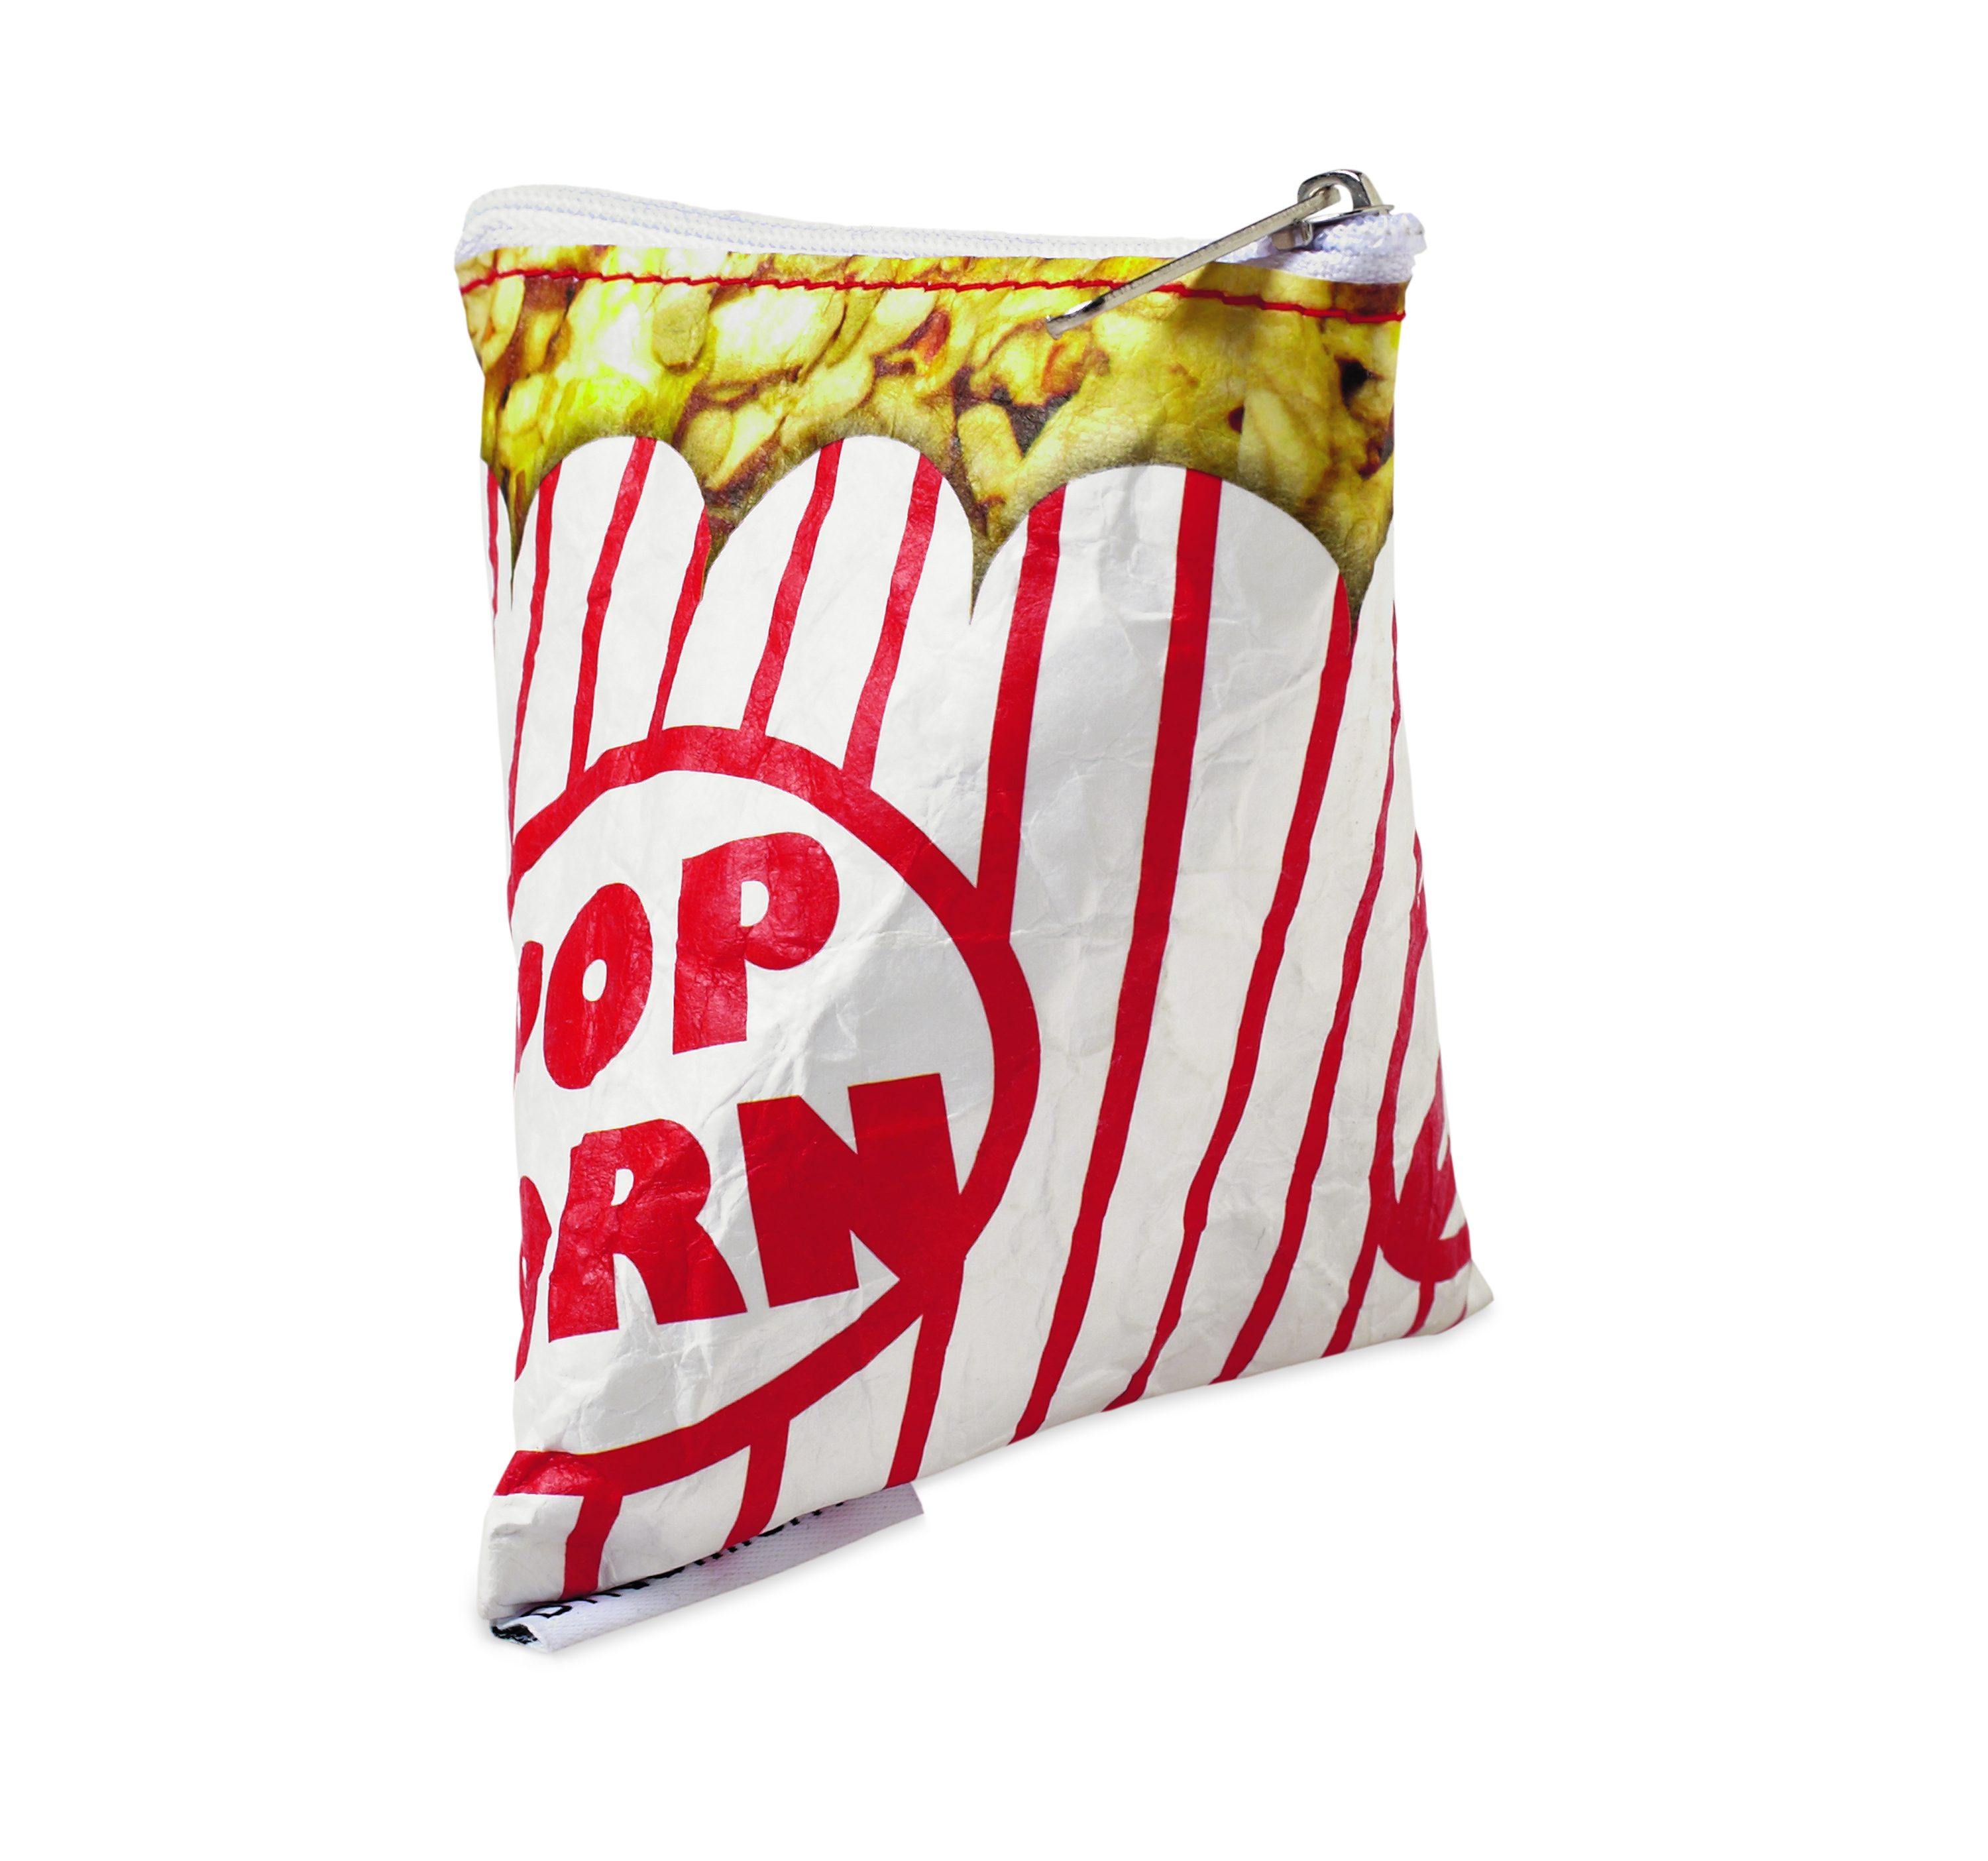 Dynomighty Mighty Stash Bag - Popcorn